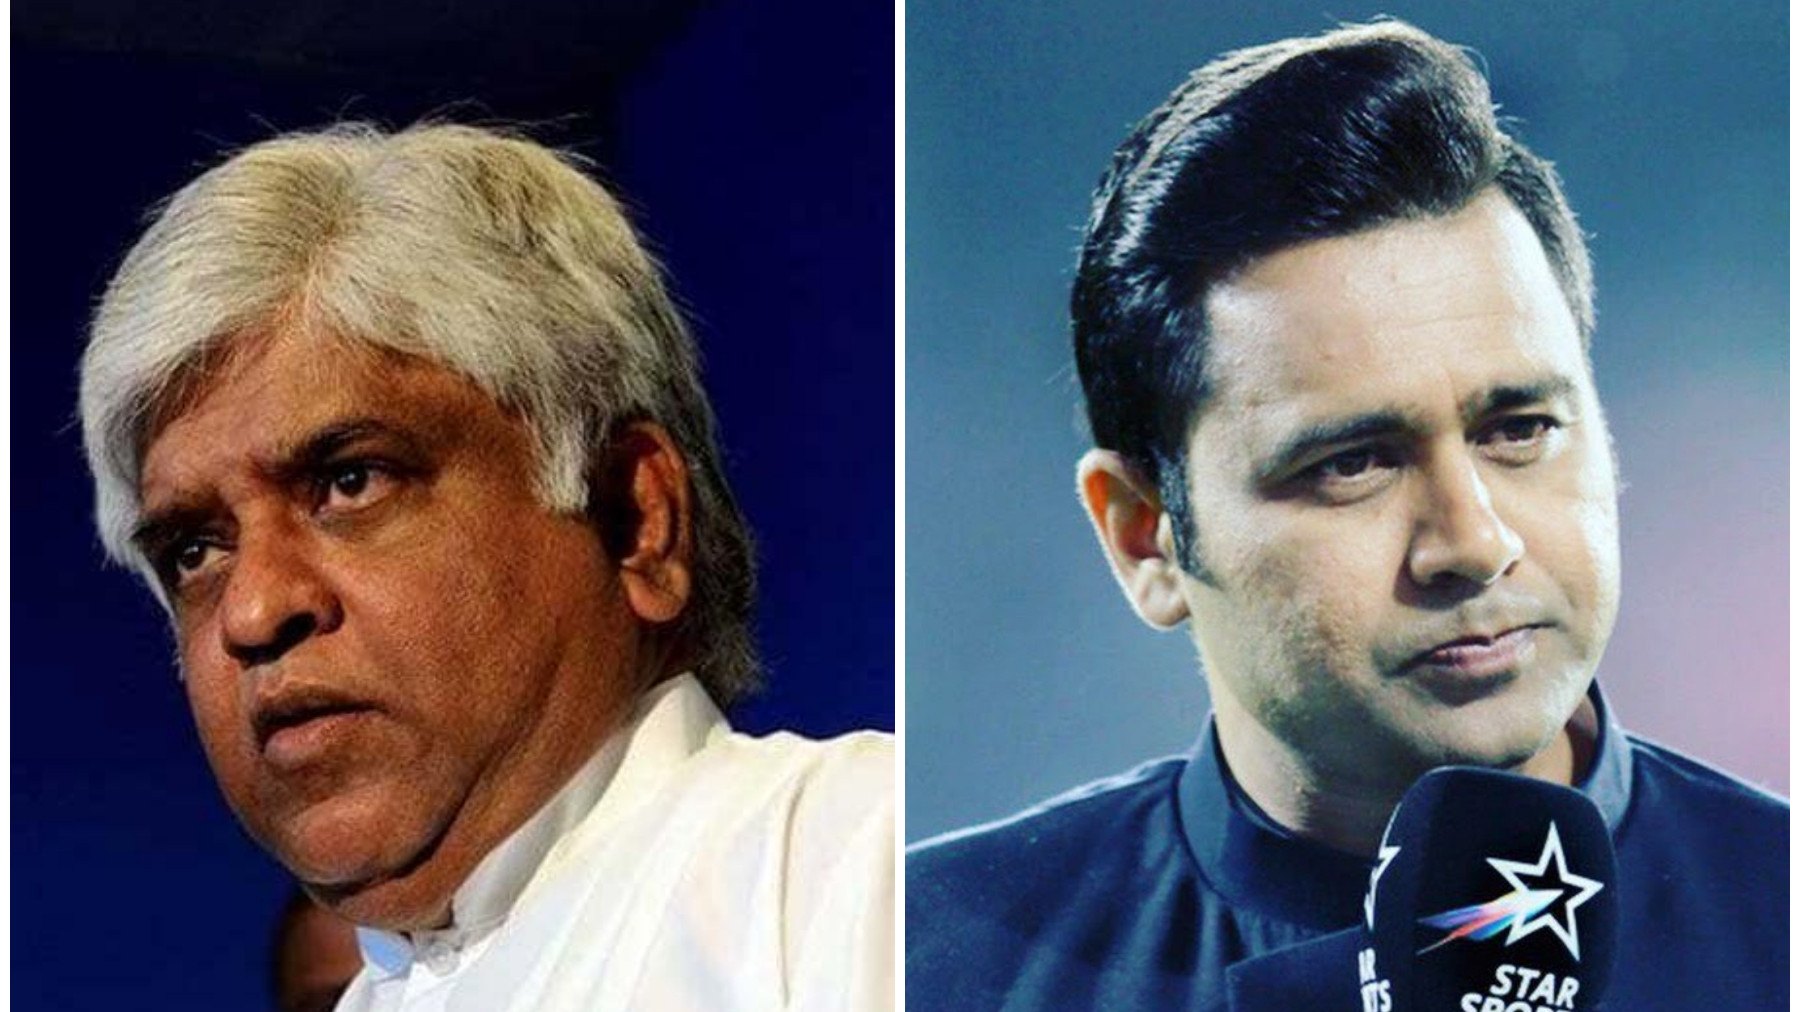 SL v IND 2021: Chopra said it looks like Indian team took Ranatunga's 'second string' comment to heart